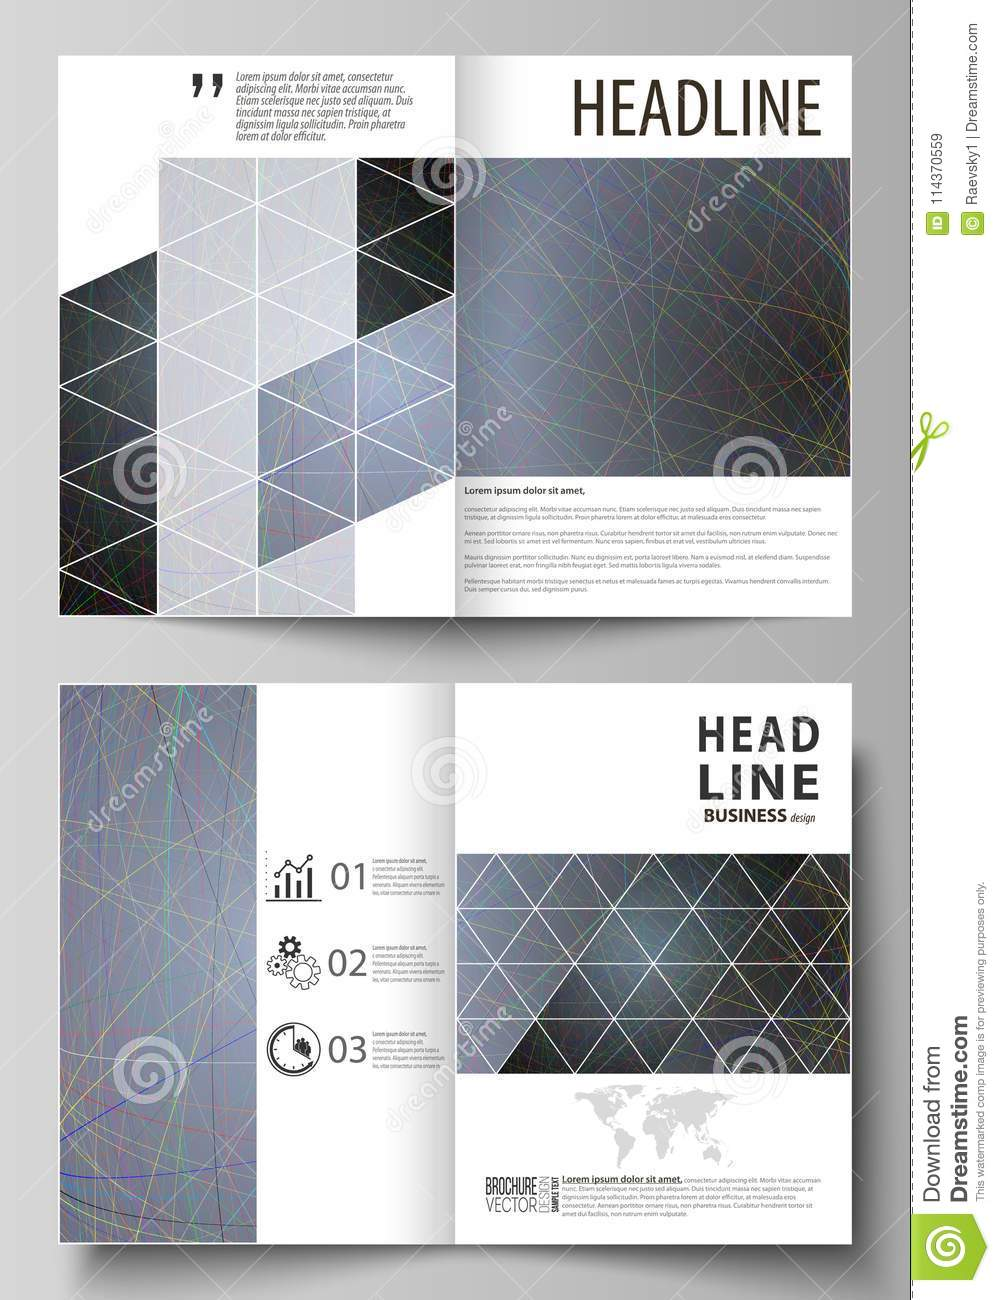 Business Templates For Bi Fold Brochure Flyer Booklet Cover Design Template Vector